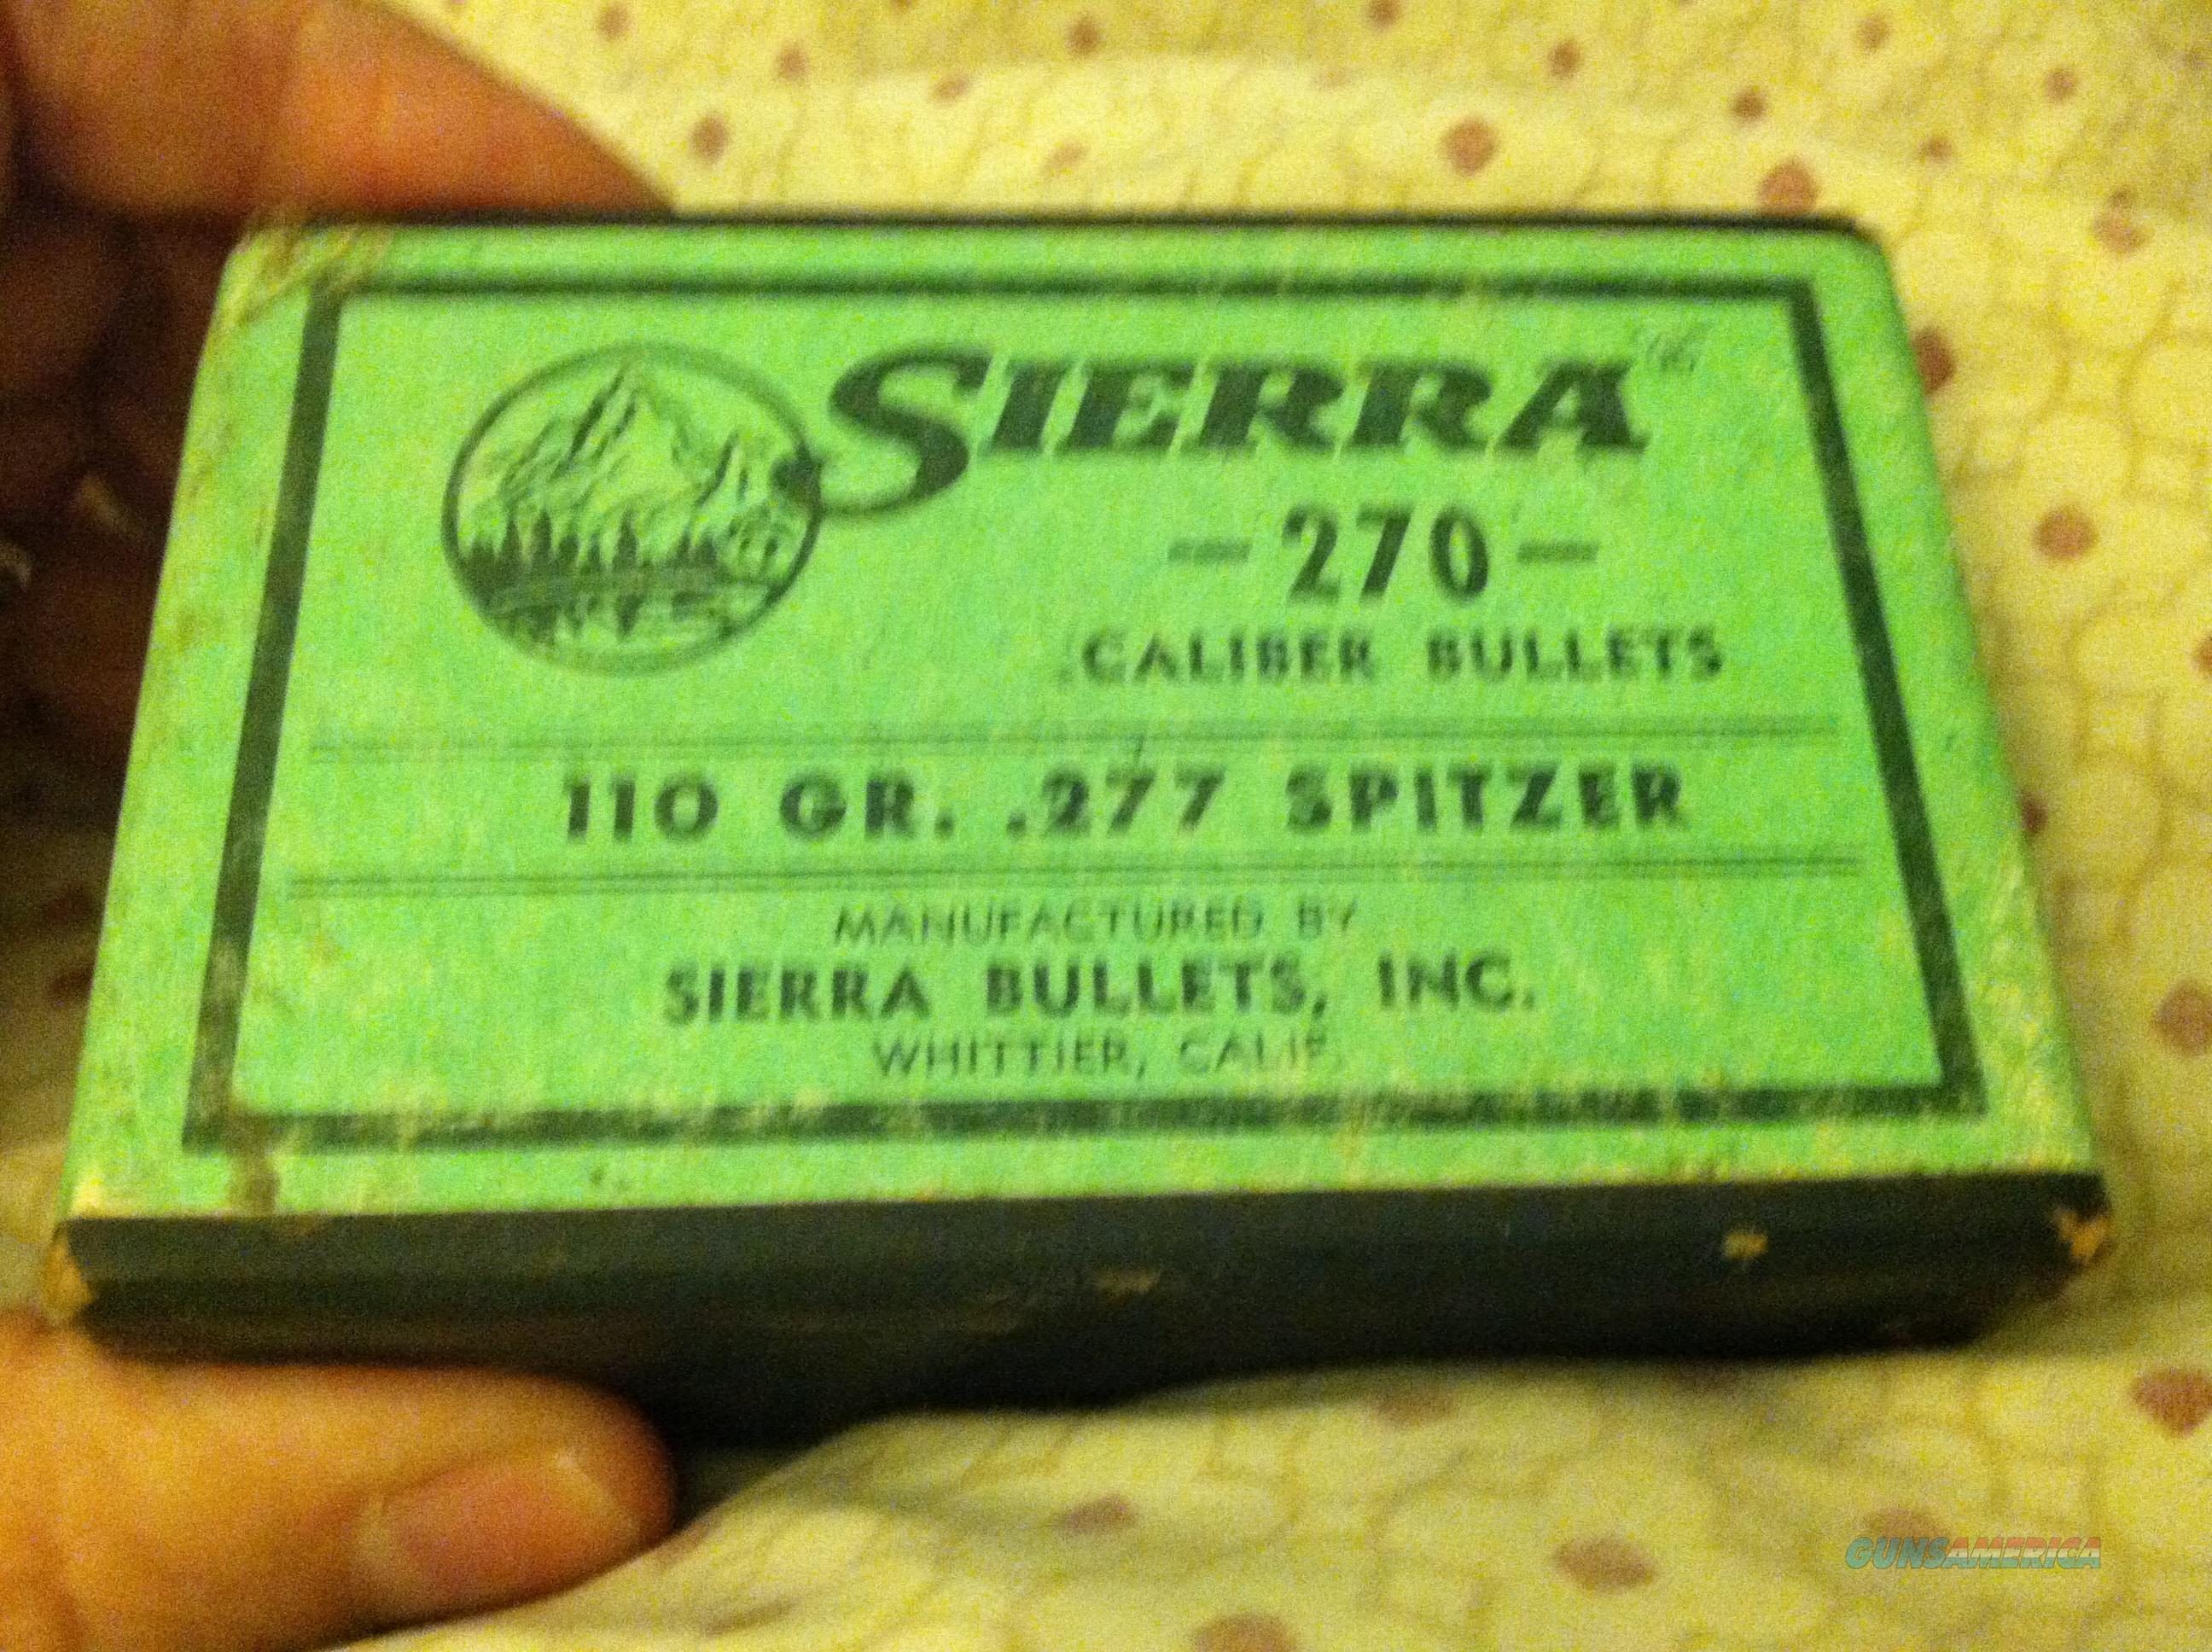 NOS SIERRA 270 caliber bullets 110 gr. .227 spitzer never opened 100 count  Non-Guns > Ammunition